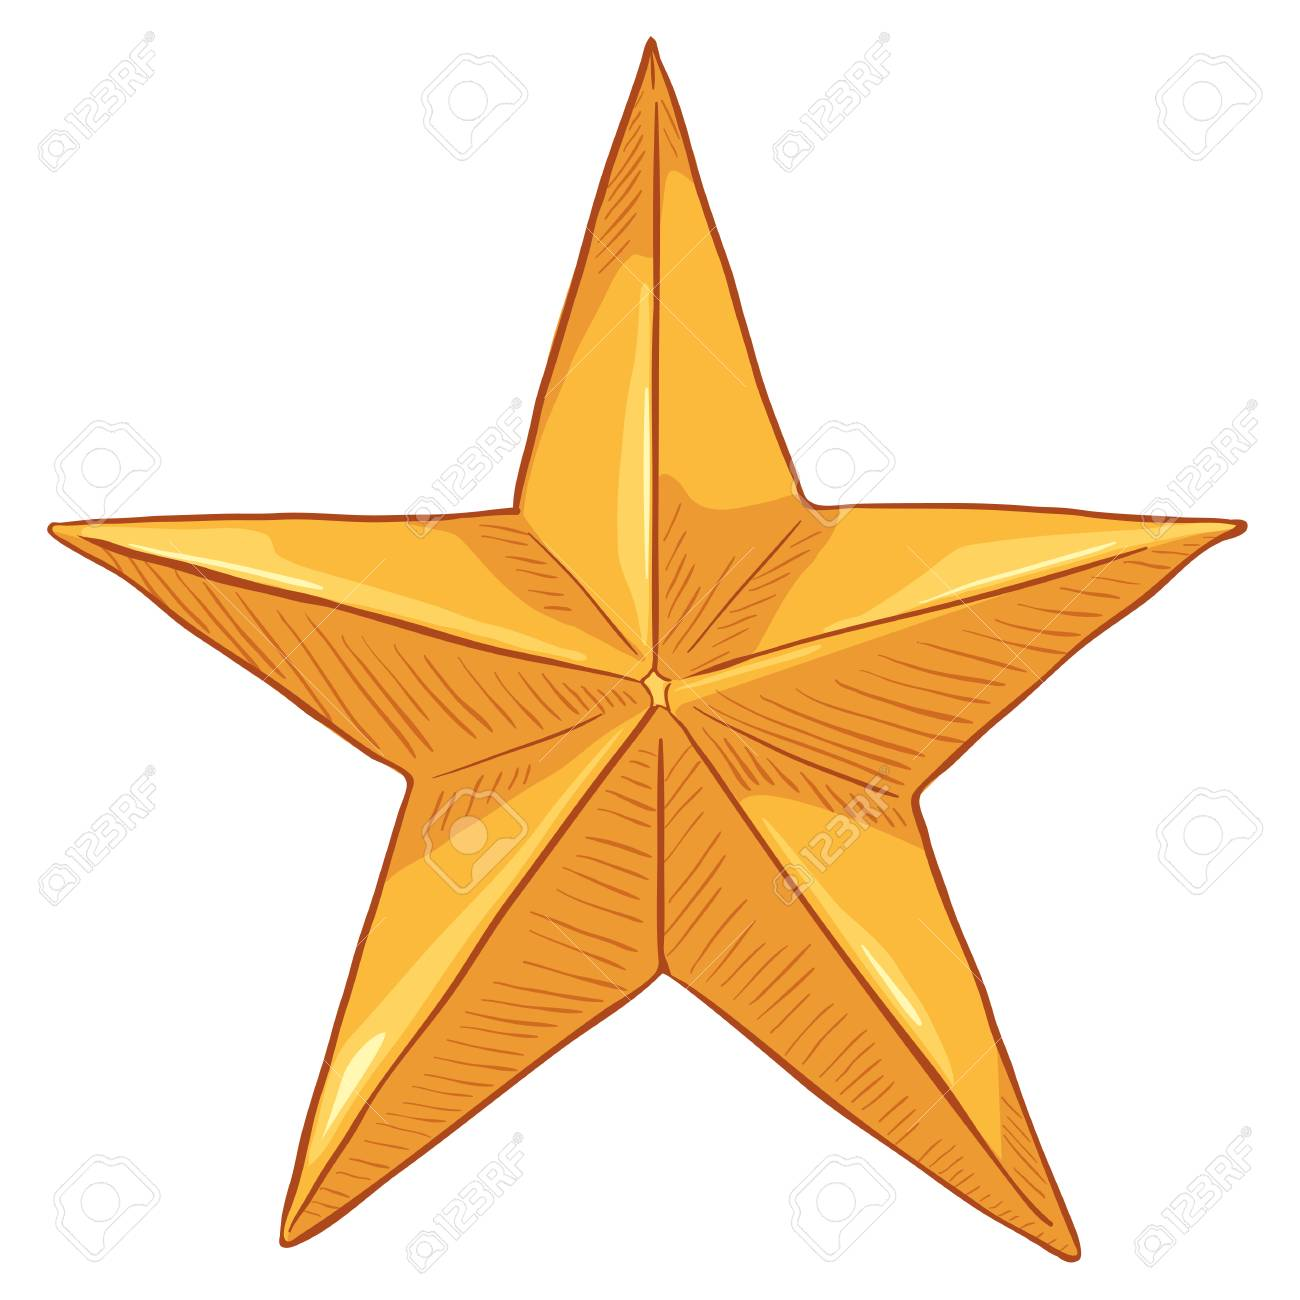 vector cartoon gold star on white background royalty free cliparts rh 123rf com